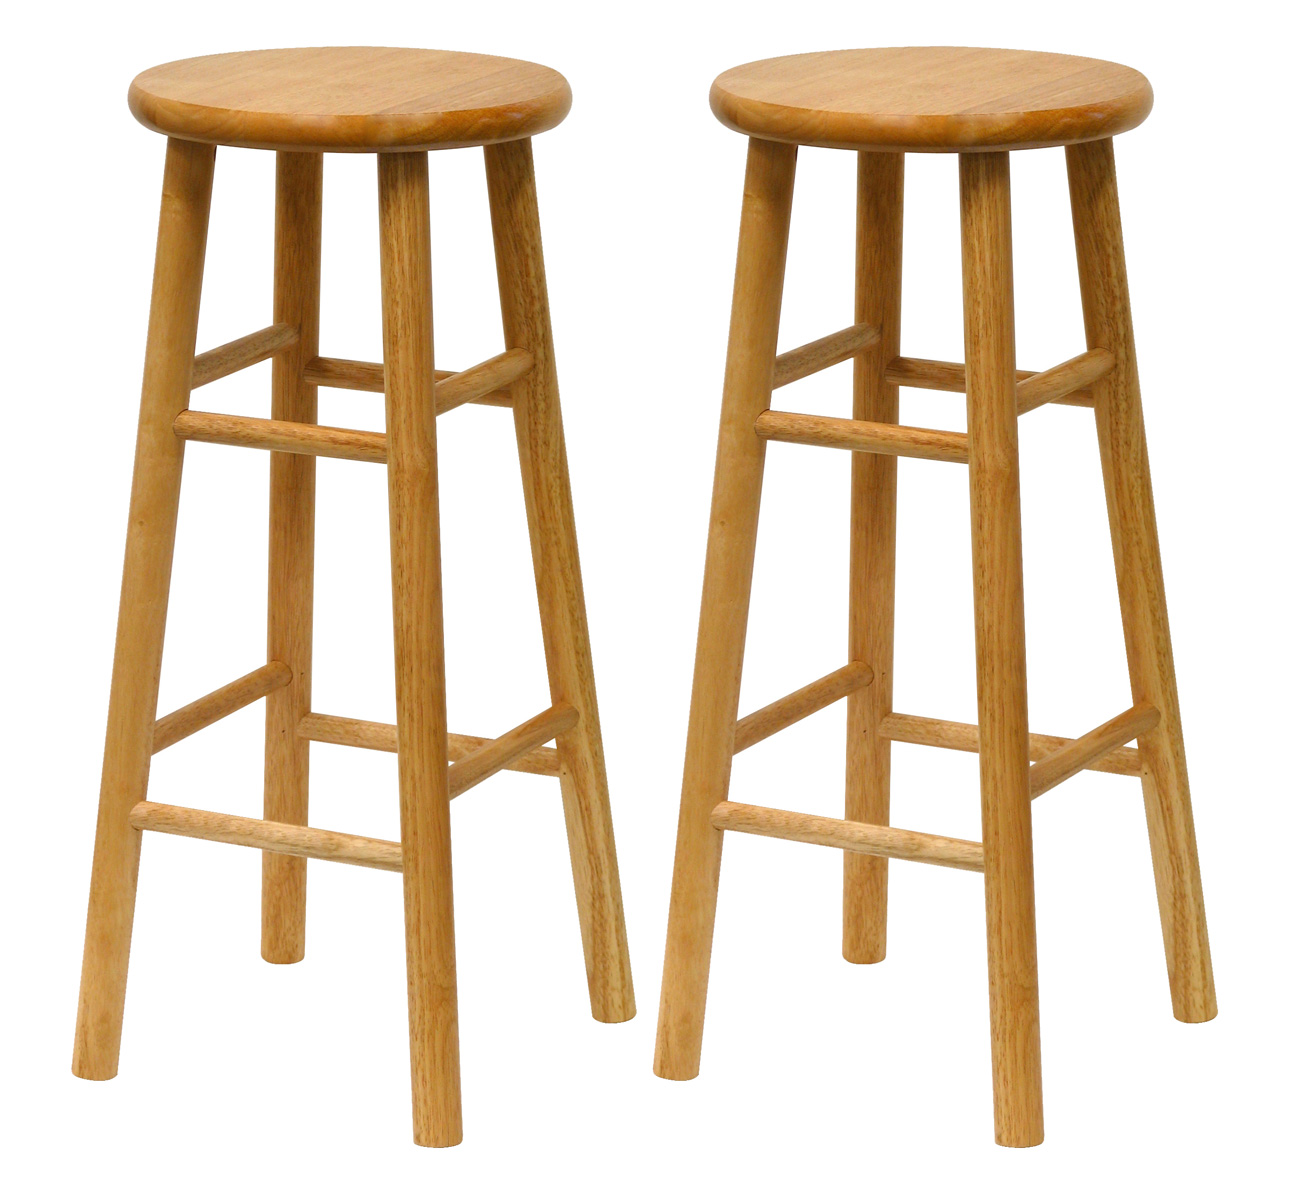 Set of 2 Bar Stools by Winsome Trading in Wood Bar Stools : set of 2 bar stools from www.organizeit.com size 1290 x 1200 jpeg 264kB